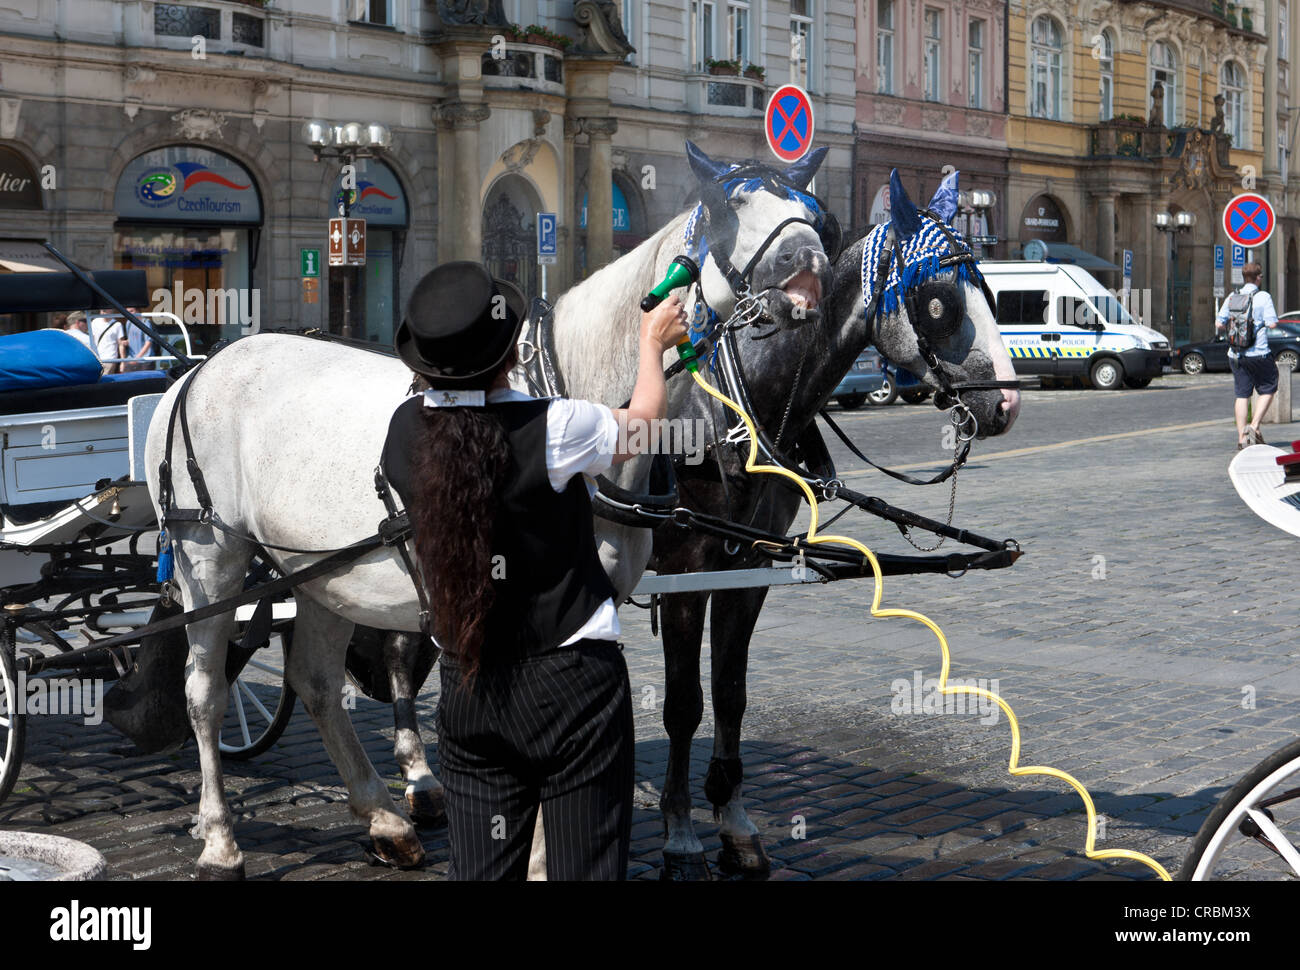 A woman spraying water on the horses of a carriage in the summer heat, Prague, Czech Republic, Europe - Stock Image